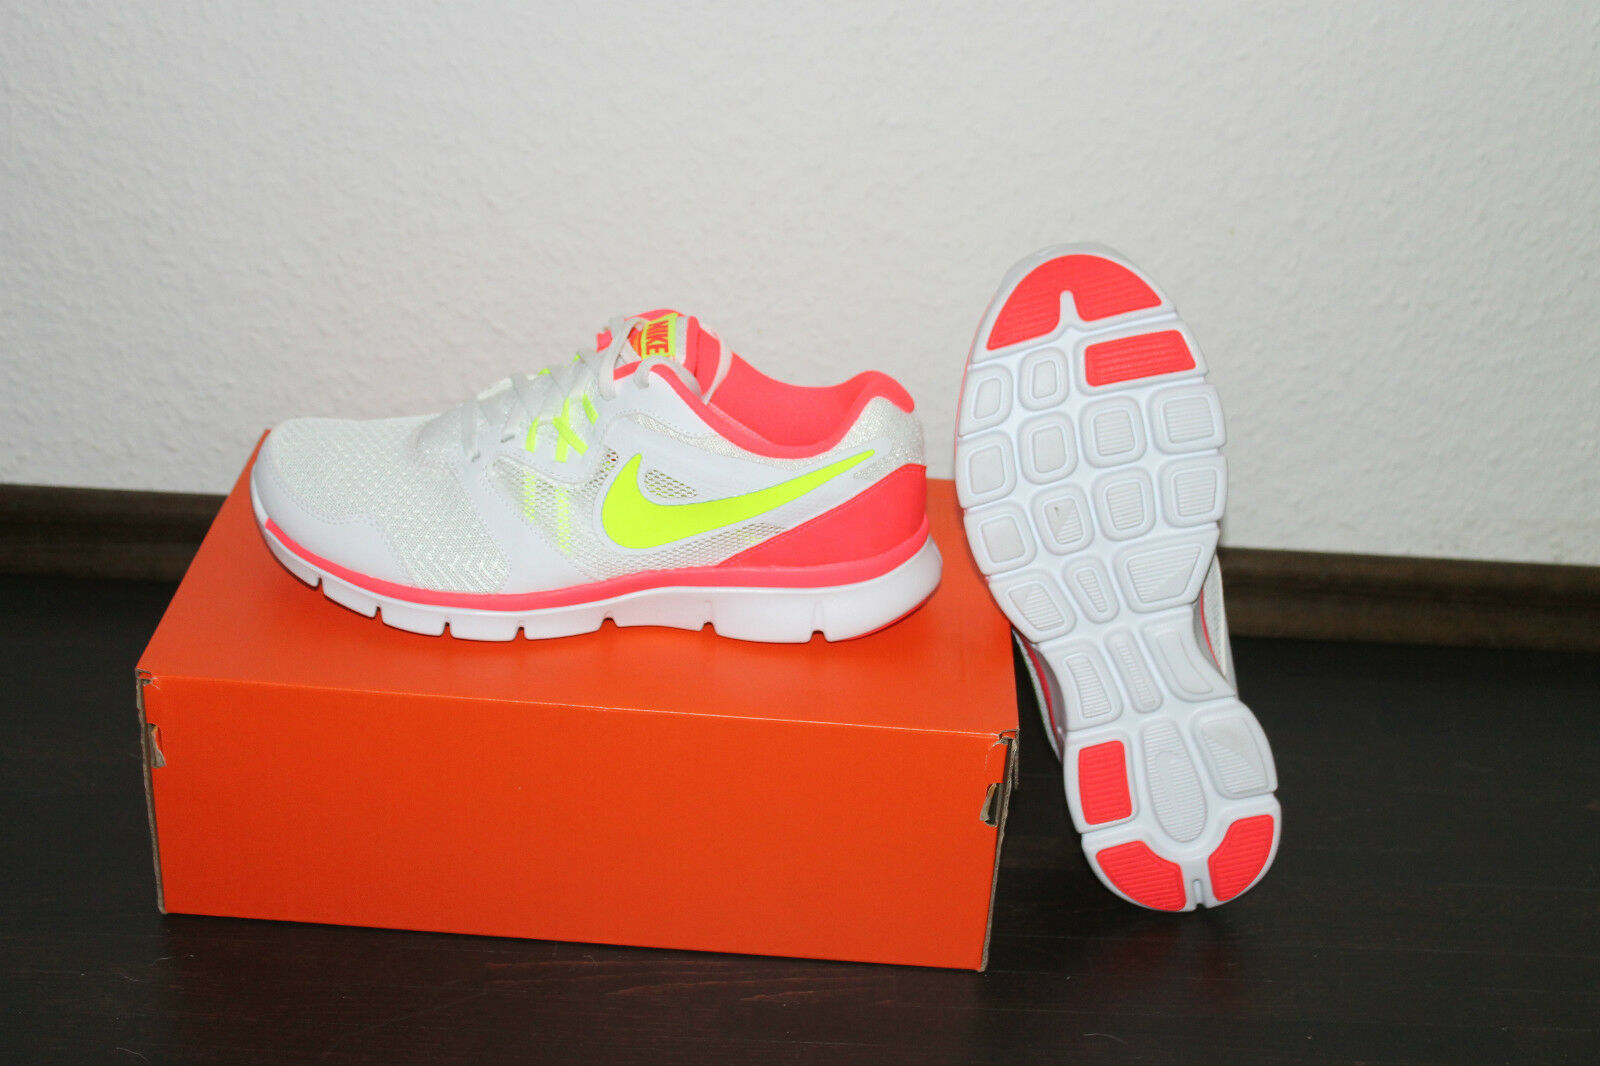 Nike Flex Ladies Running shoes White Pink Yellow  All Sizes New With Carton  brand on sale clearance